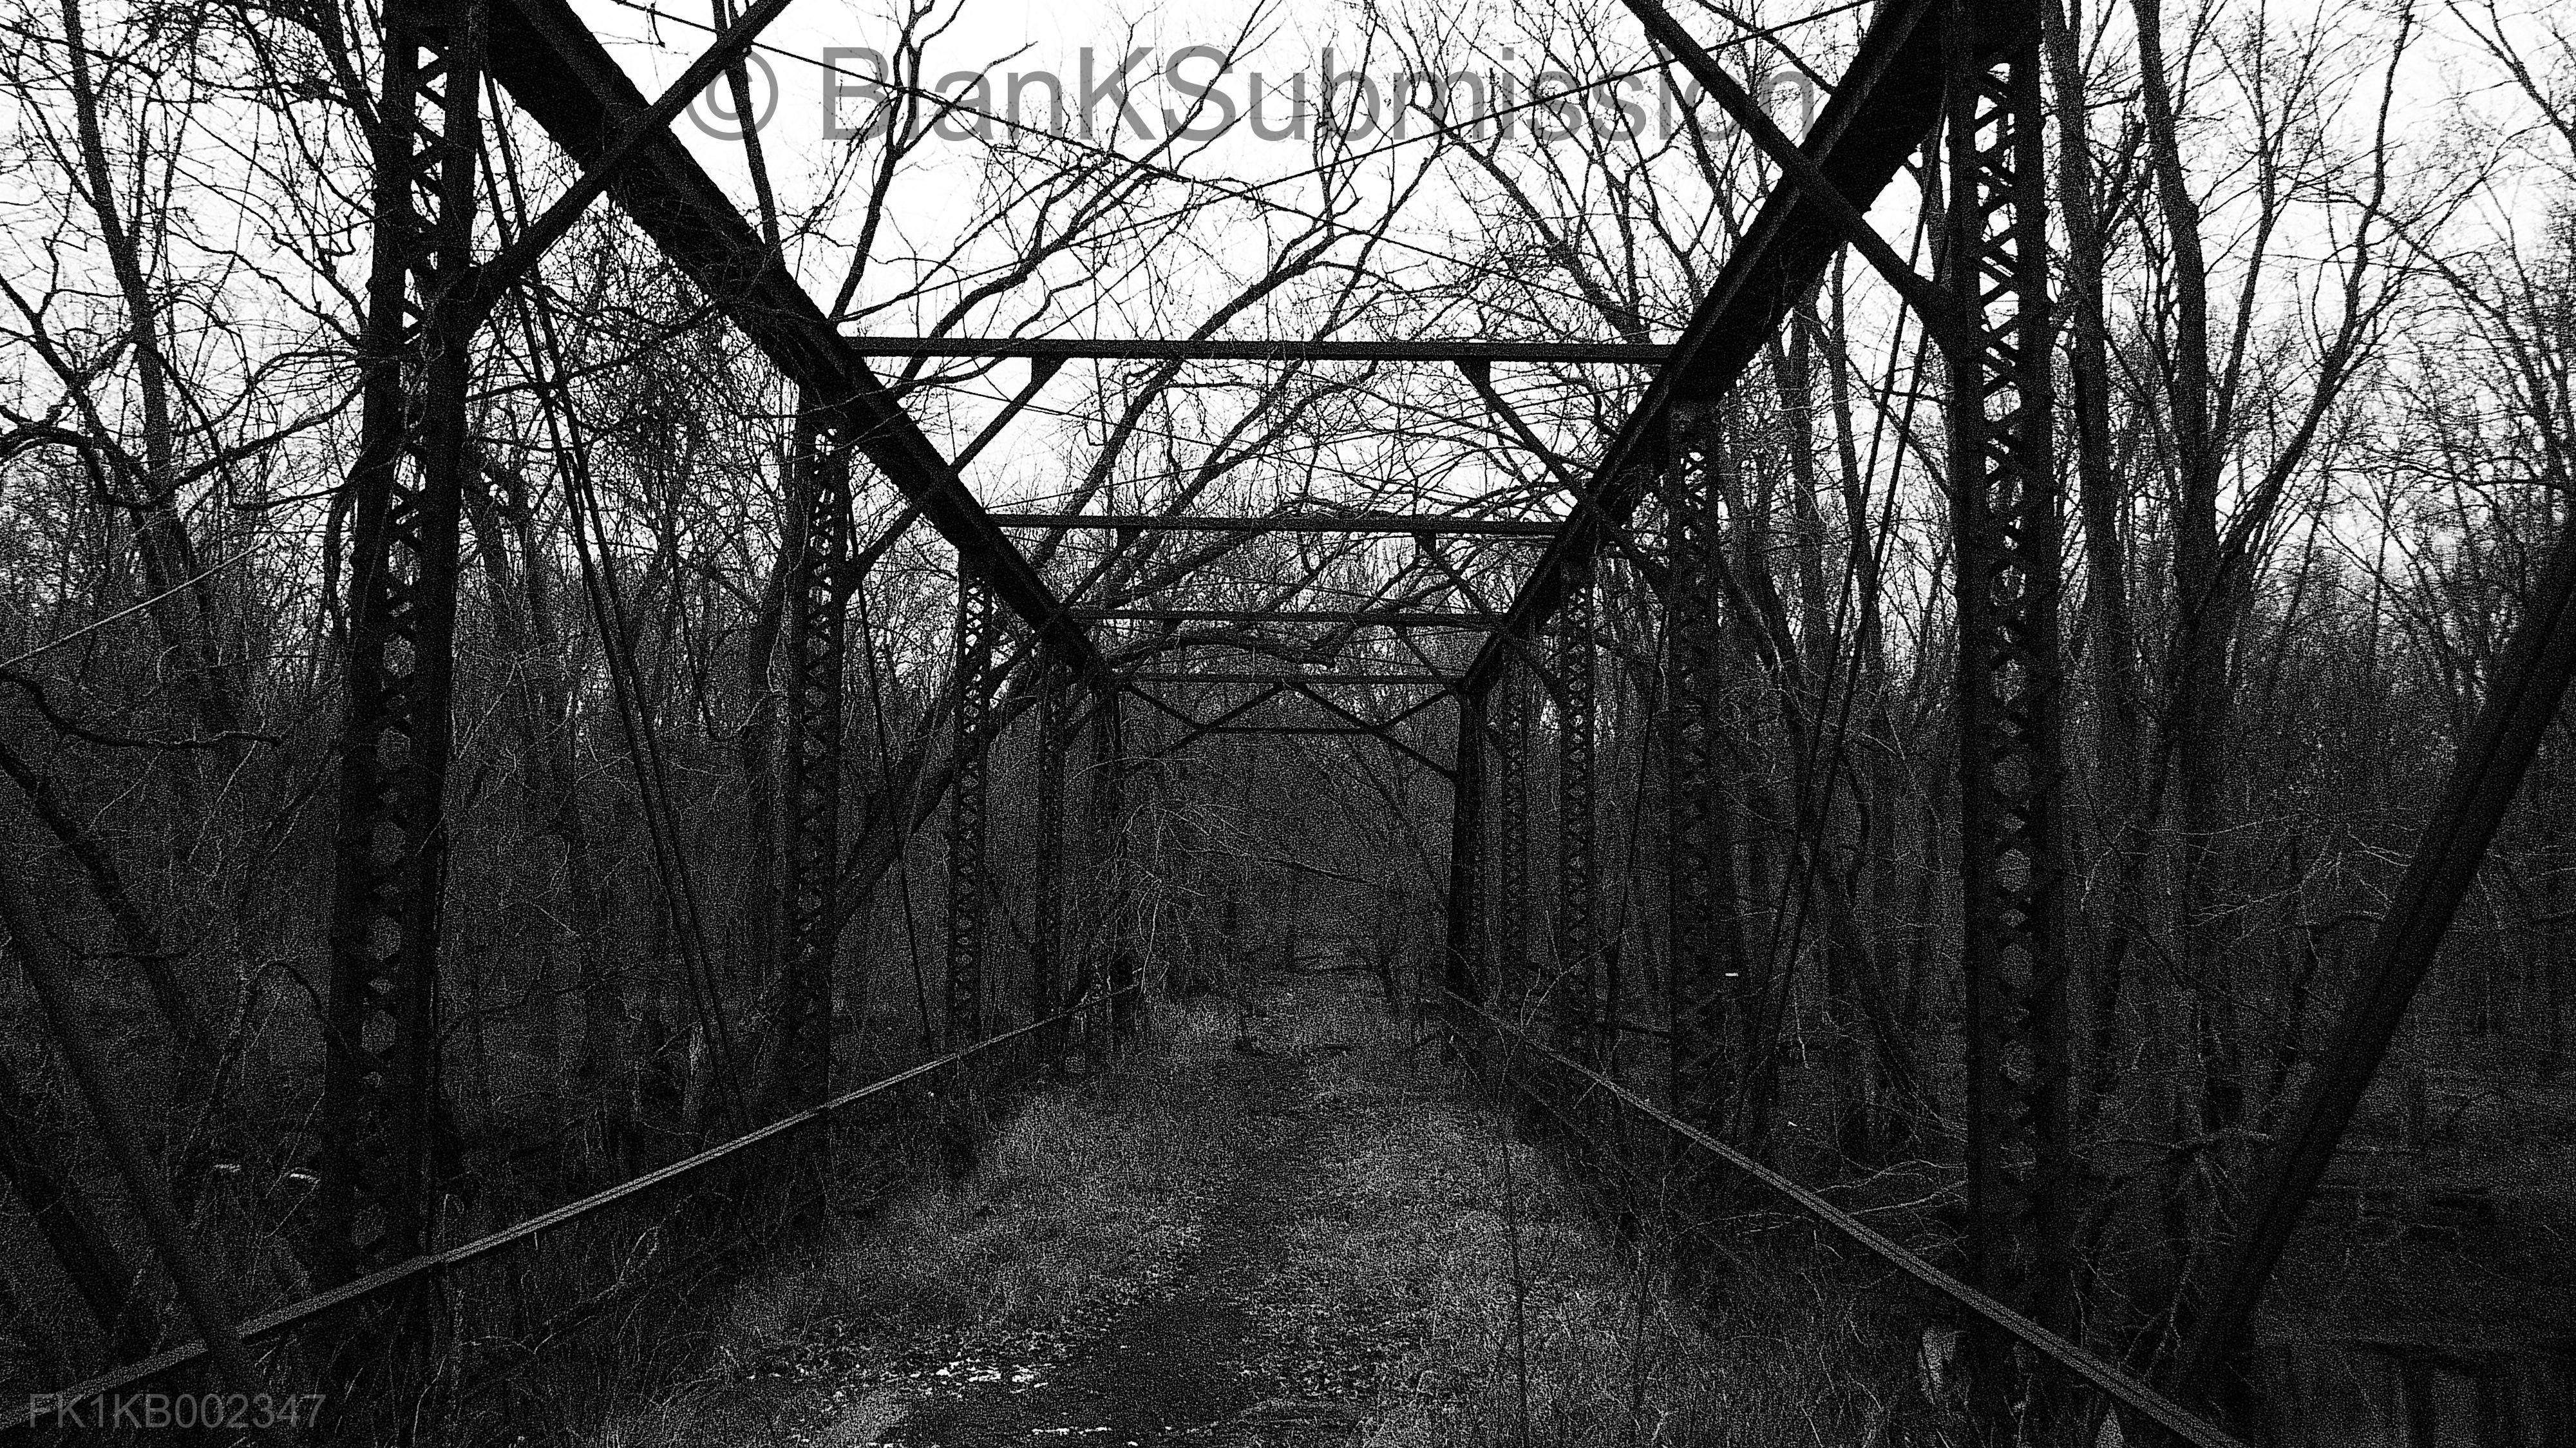 Dog Face Bridge by BlanKSubmission